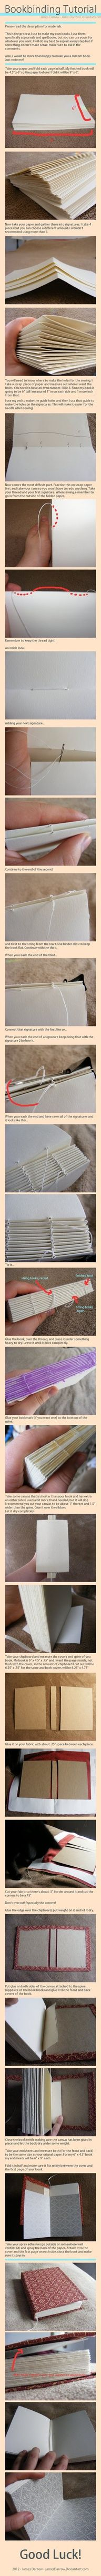 Book binding tutorial. I might have to start making handmade journals...  hope these taste as good as they look!